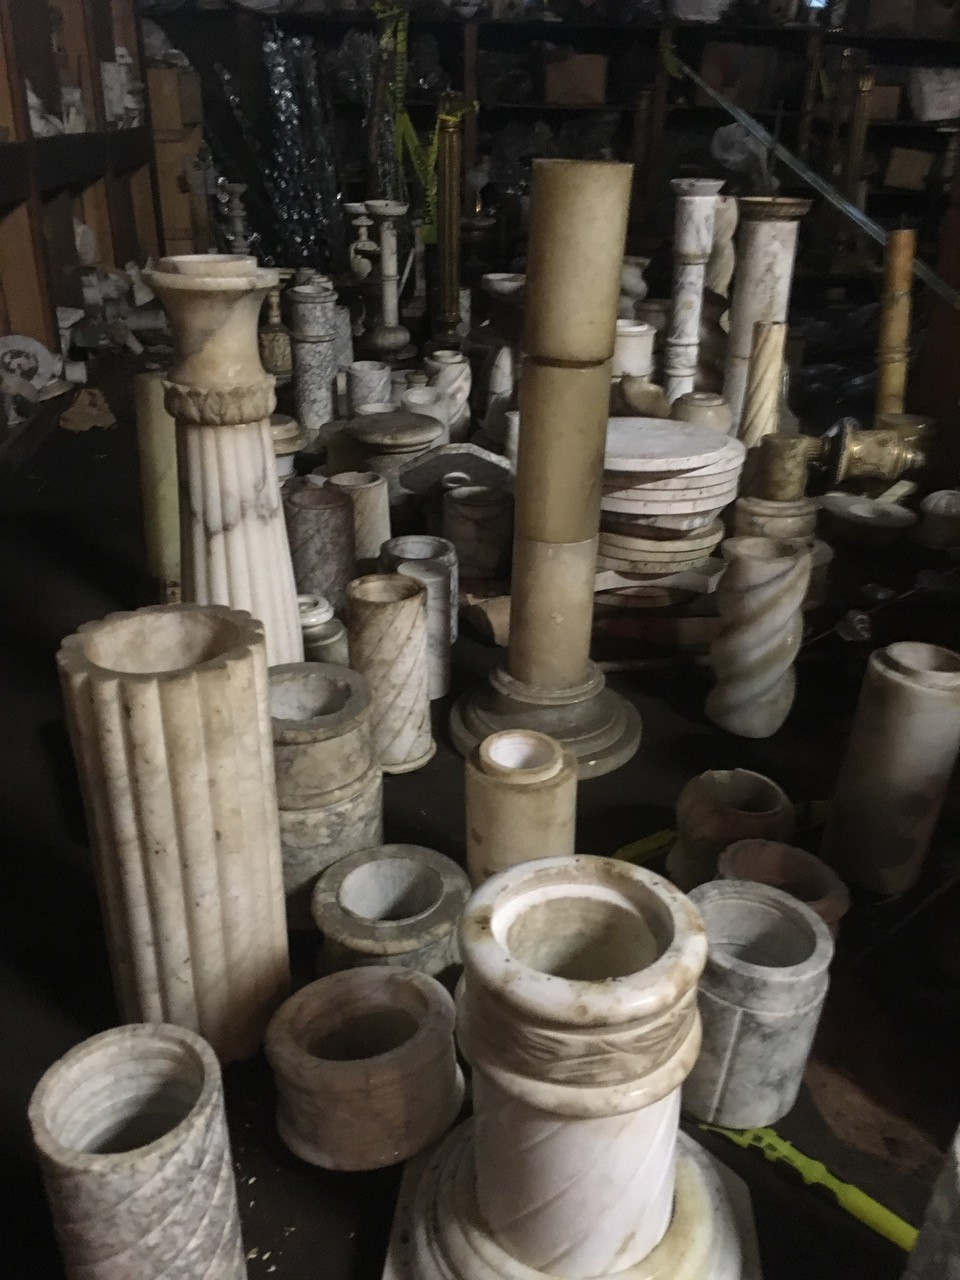 Italian Marble table tops, lamp bases, pots, and more.